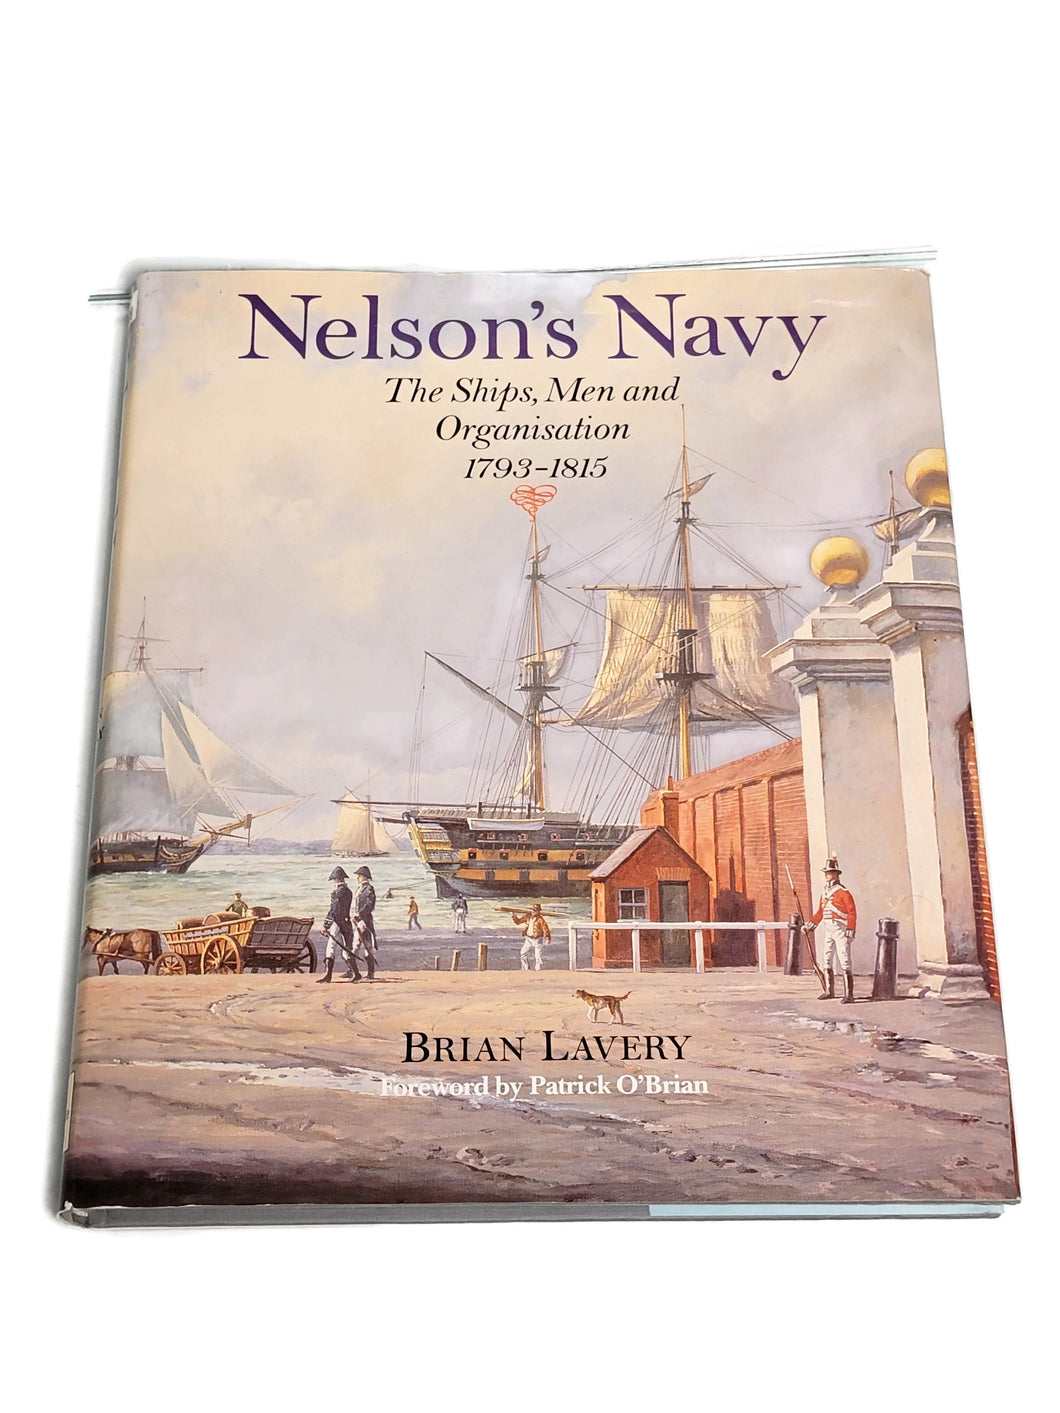 Nelson's Navy: the Ships, Men and Organisation 1793-1815 ISBN #0870212583